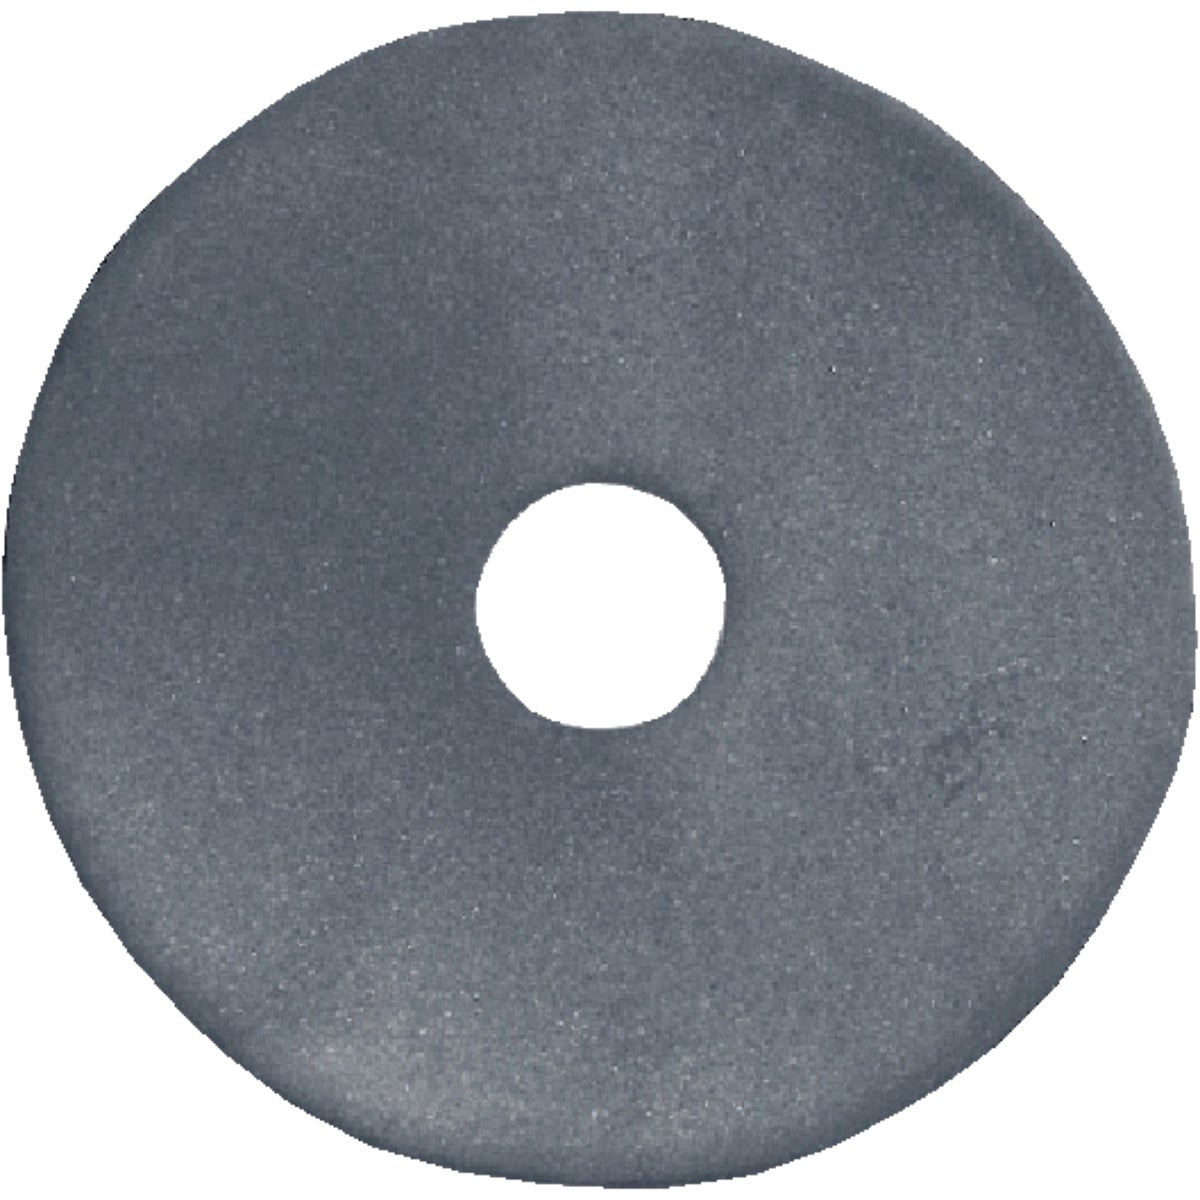 "1-1/4""OD WASHER - 61805B by Danco Perfect Match"